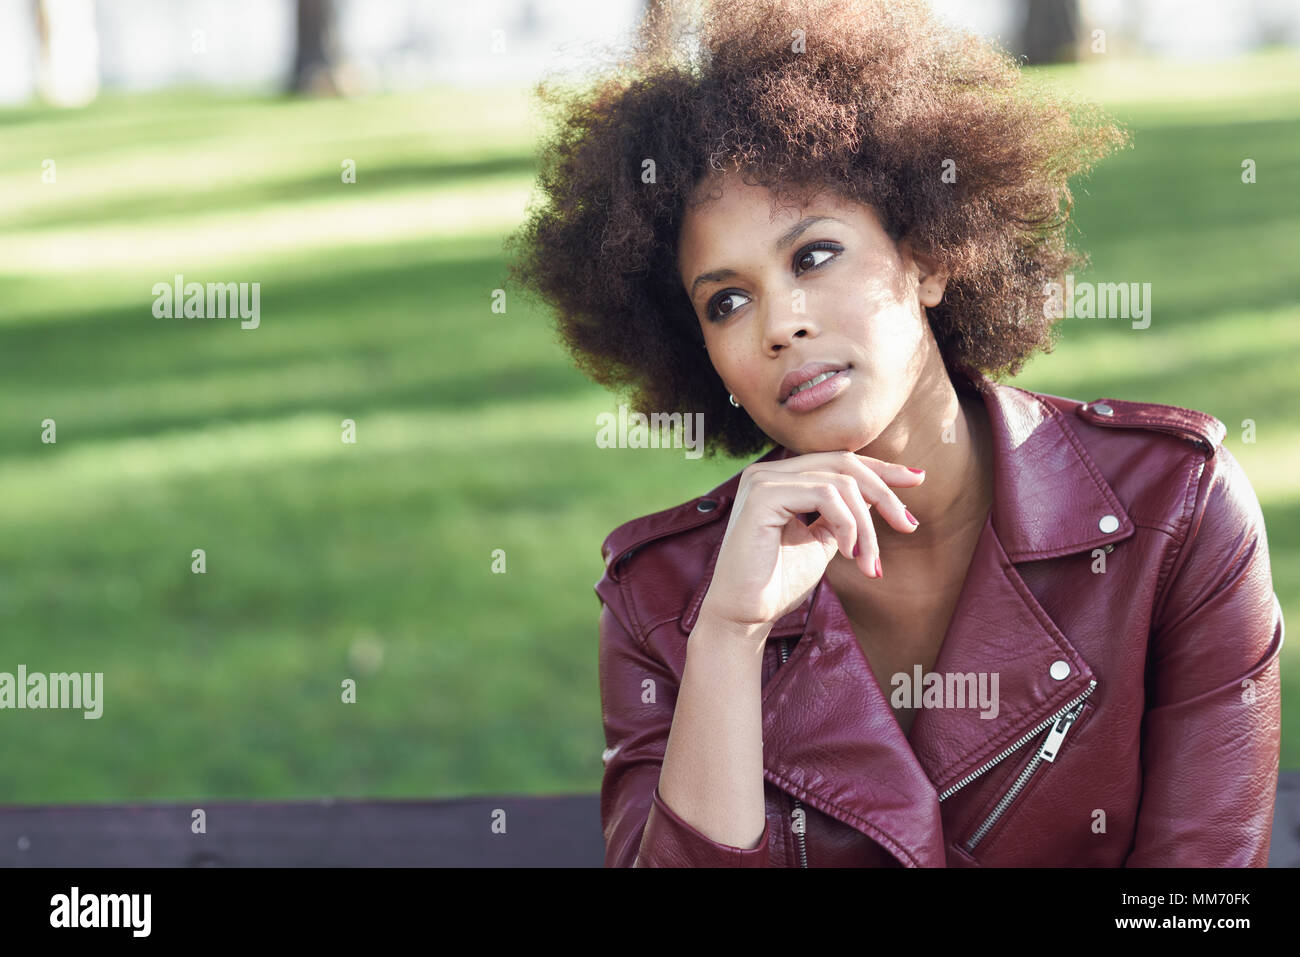 Young Black Female With Afro Hairstyle Sitting In A Bench In An